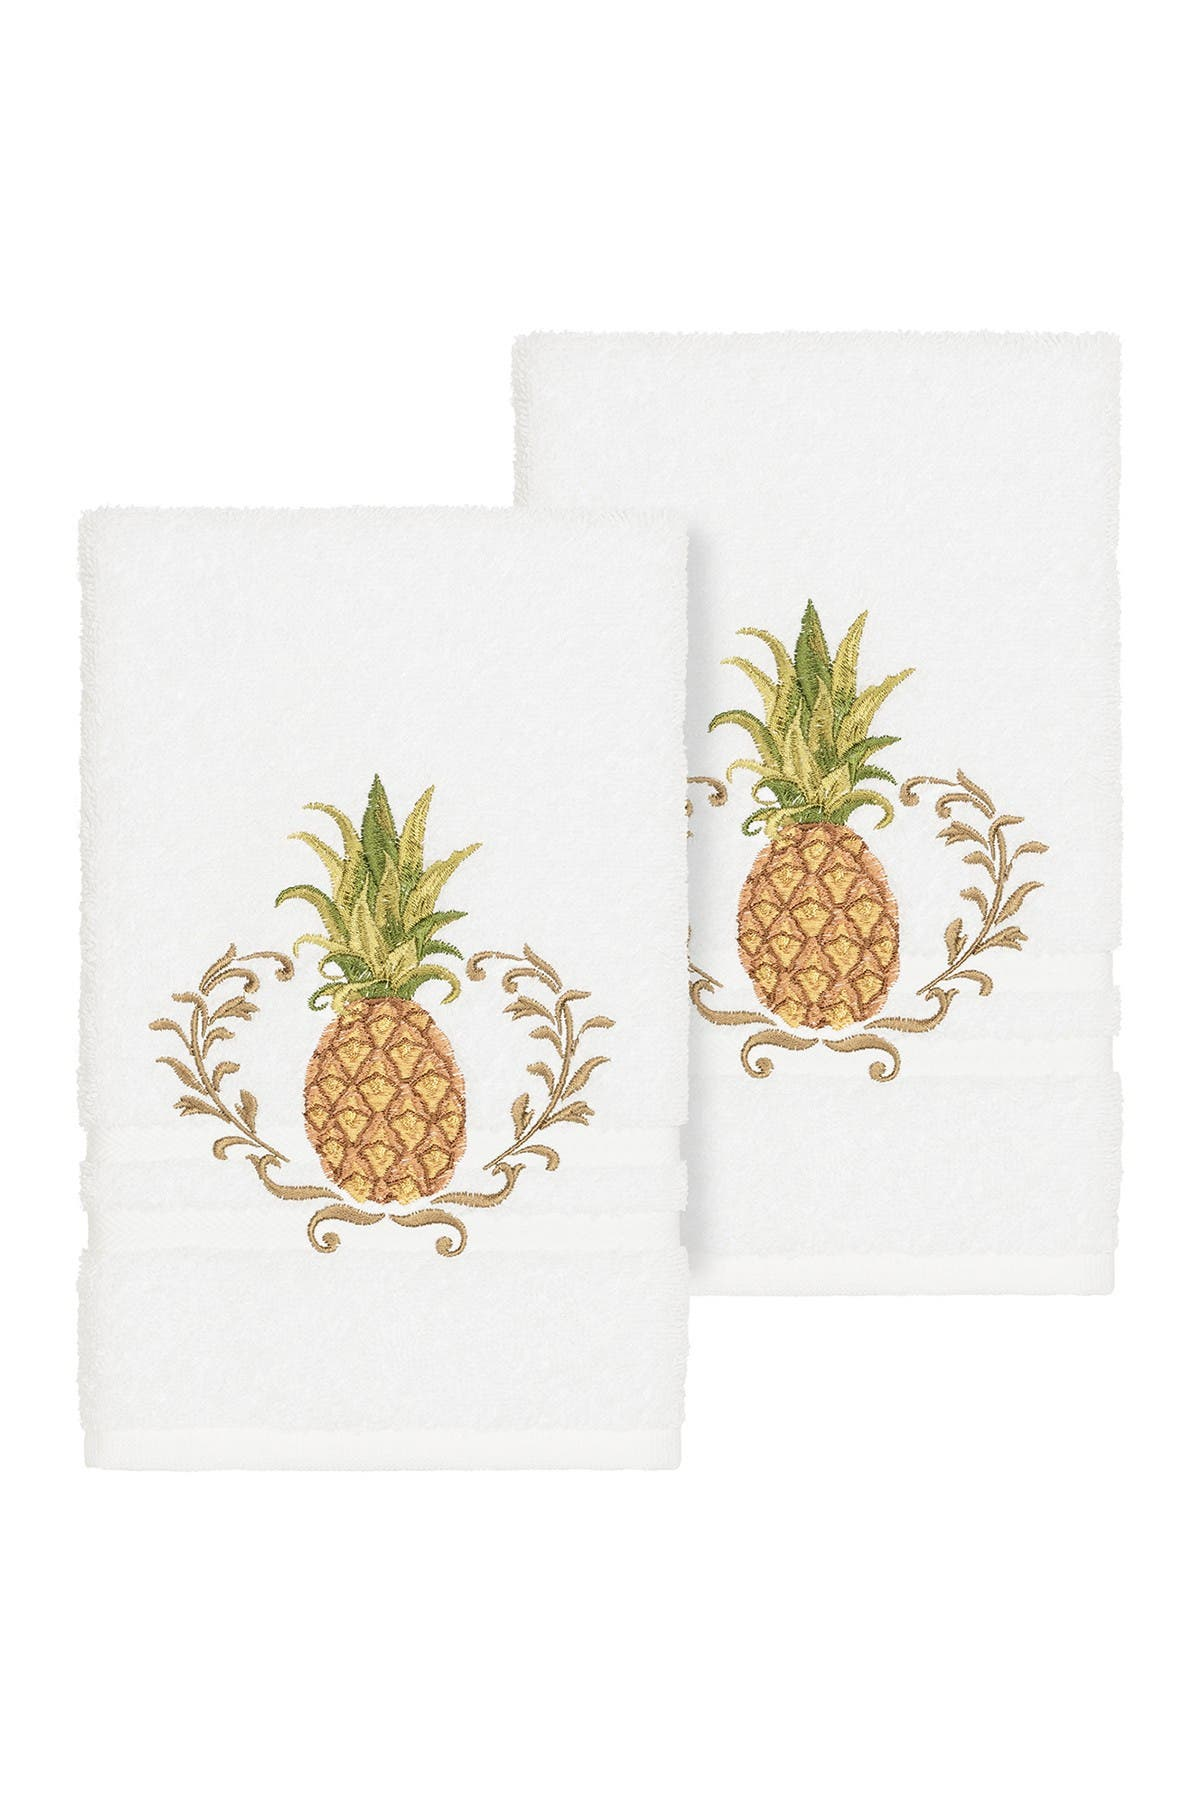 Image of LINUM HOME Welcome Embellished Hand Towel - Set of 2 - White